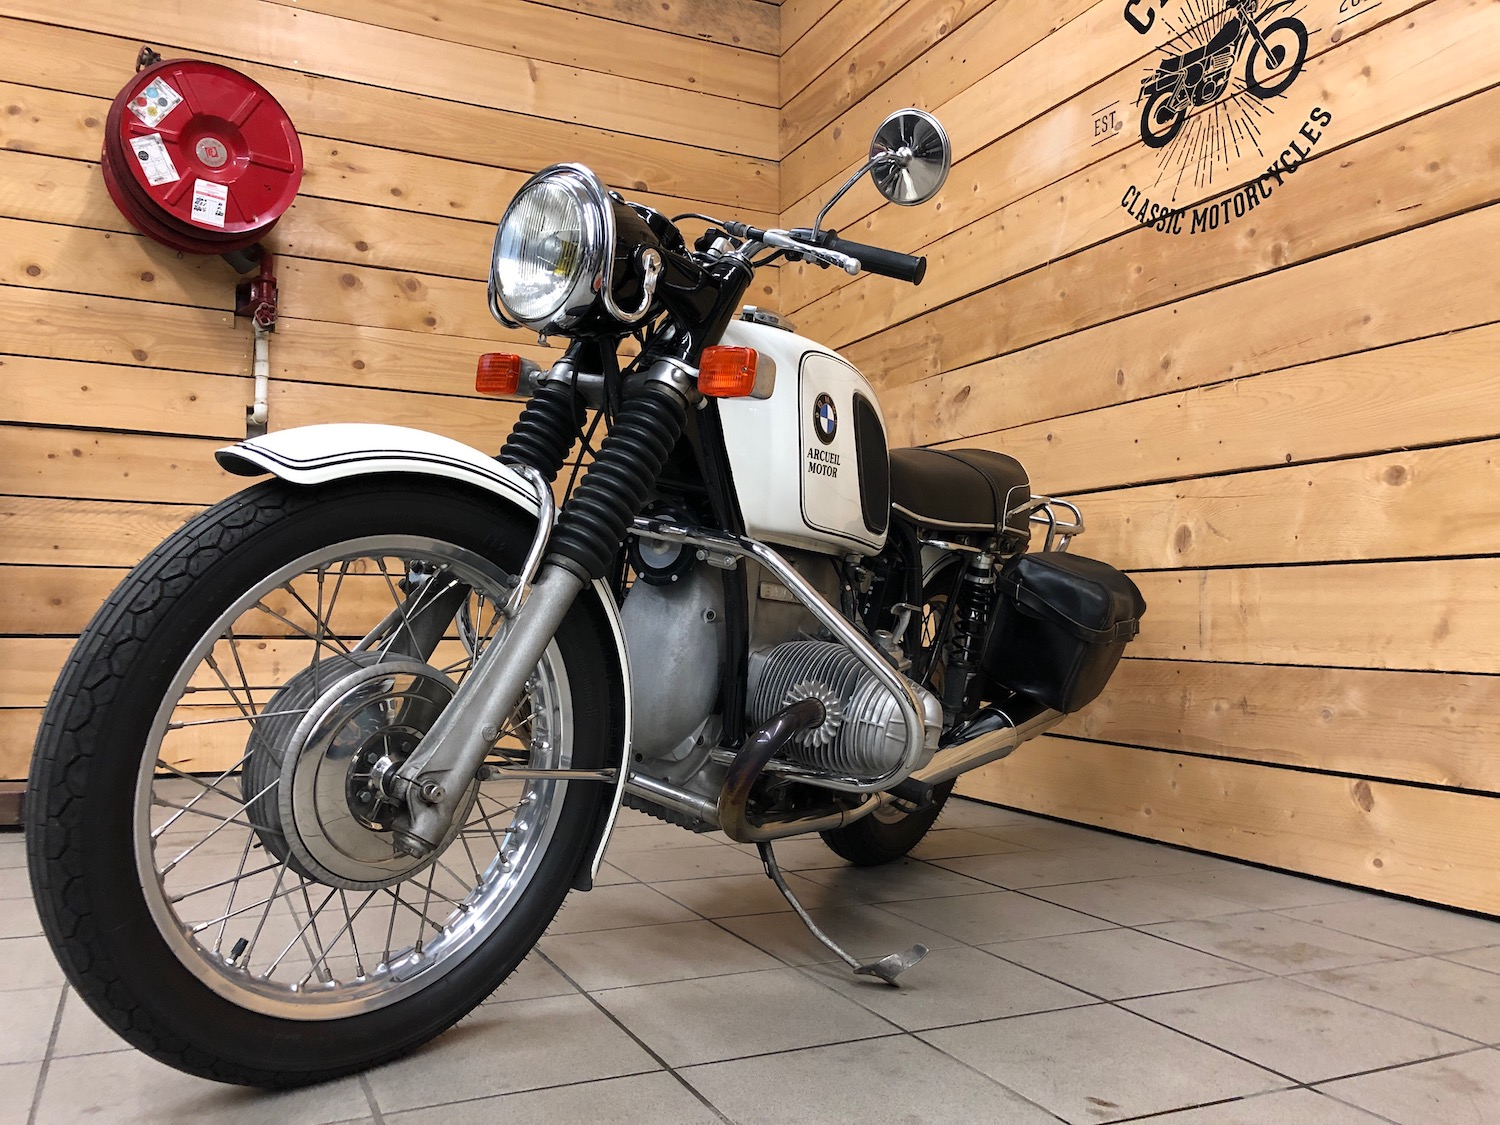 bmw_r75_cezanne_classic_motorcycle_2-75.jpg